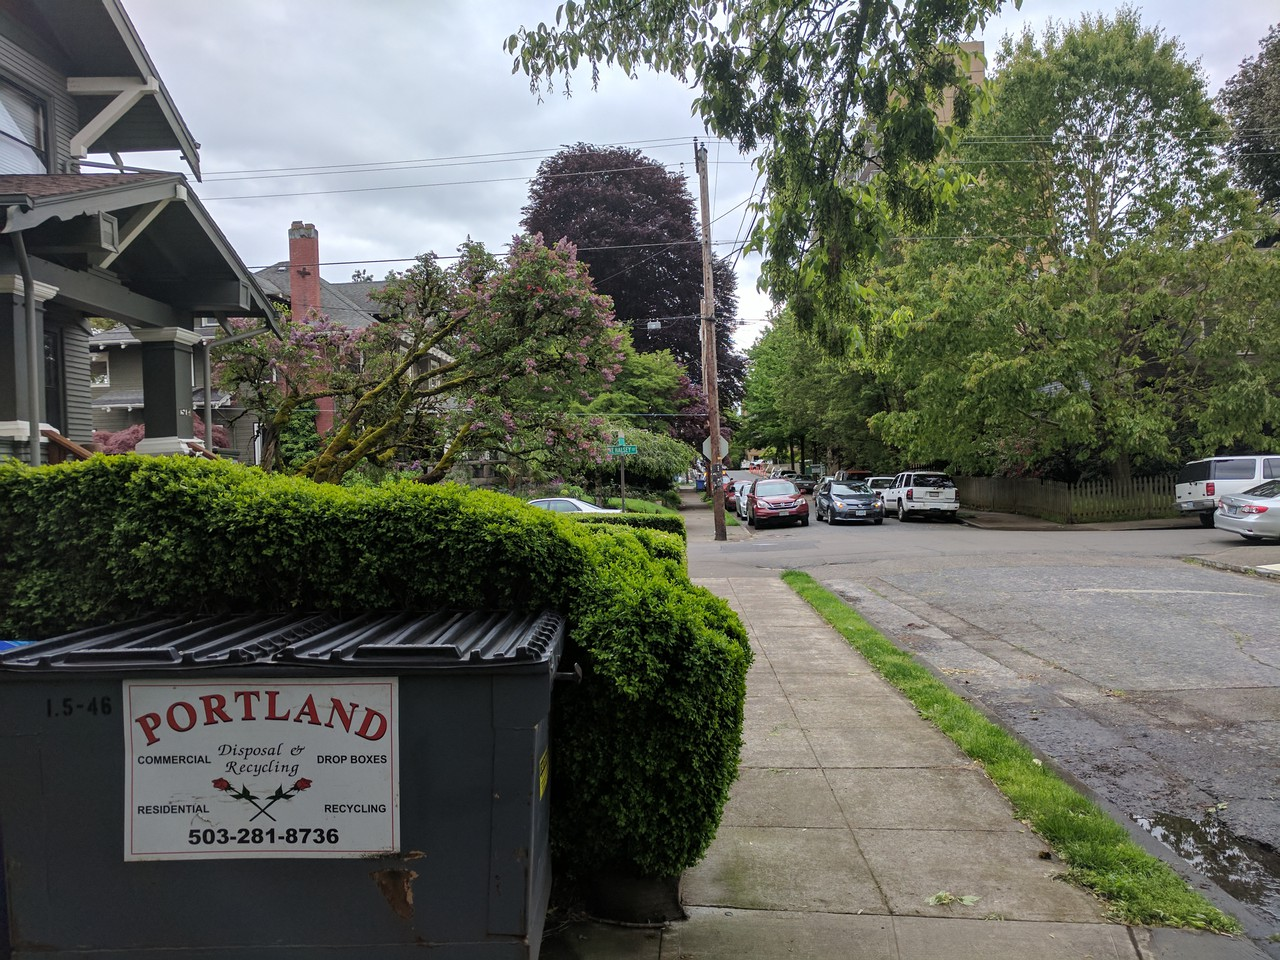 Portland, OR 97232, USA @ 1PM Wednesday, 17 May 2017